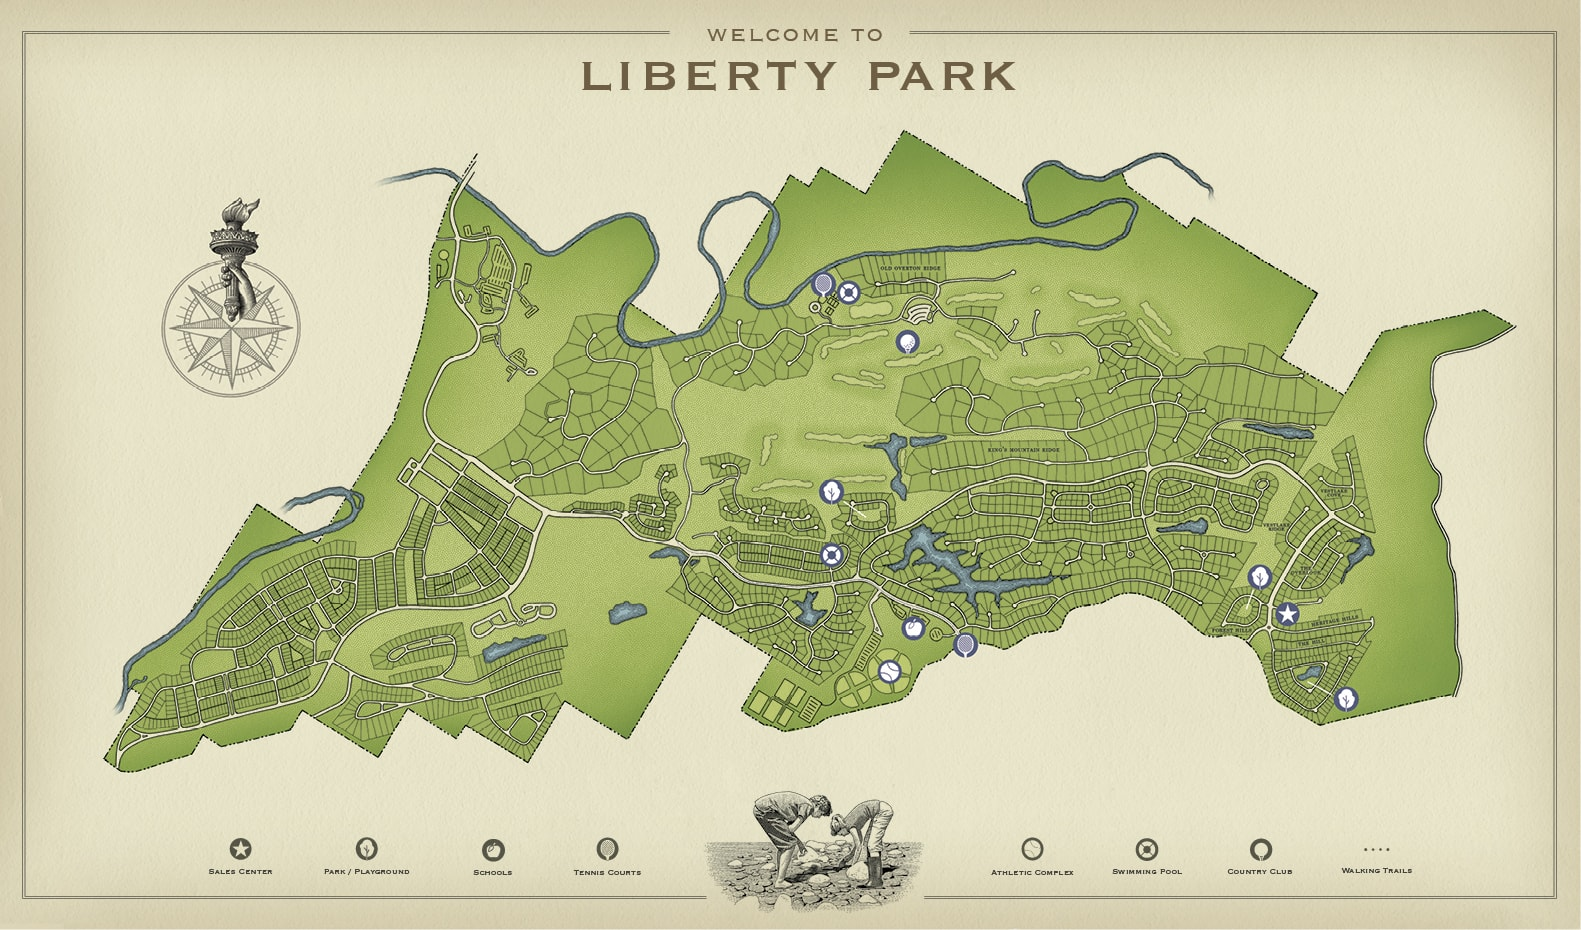 Map of Liberty Park